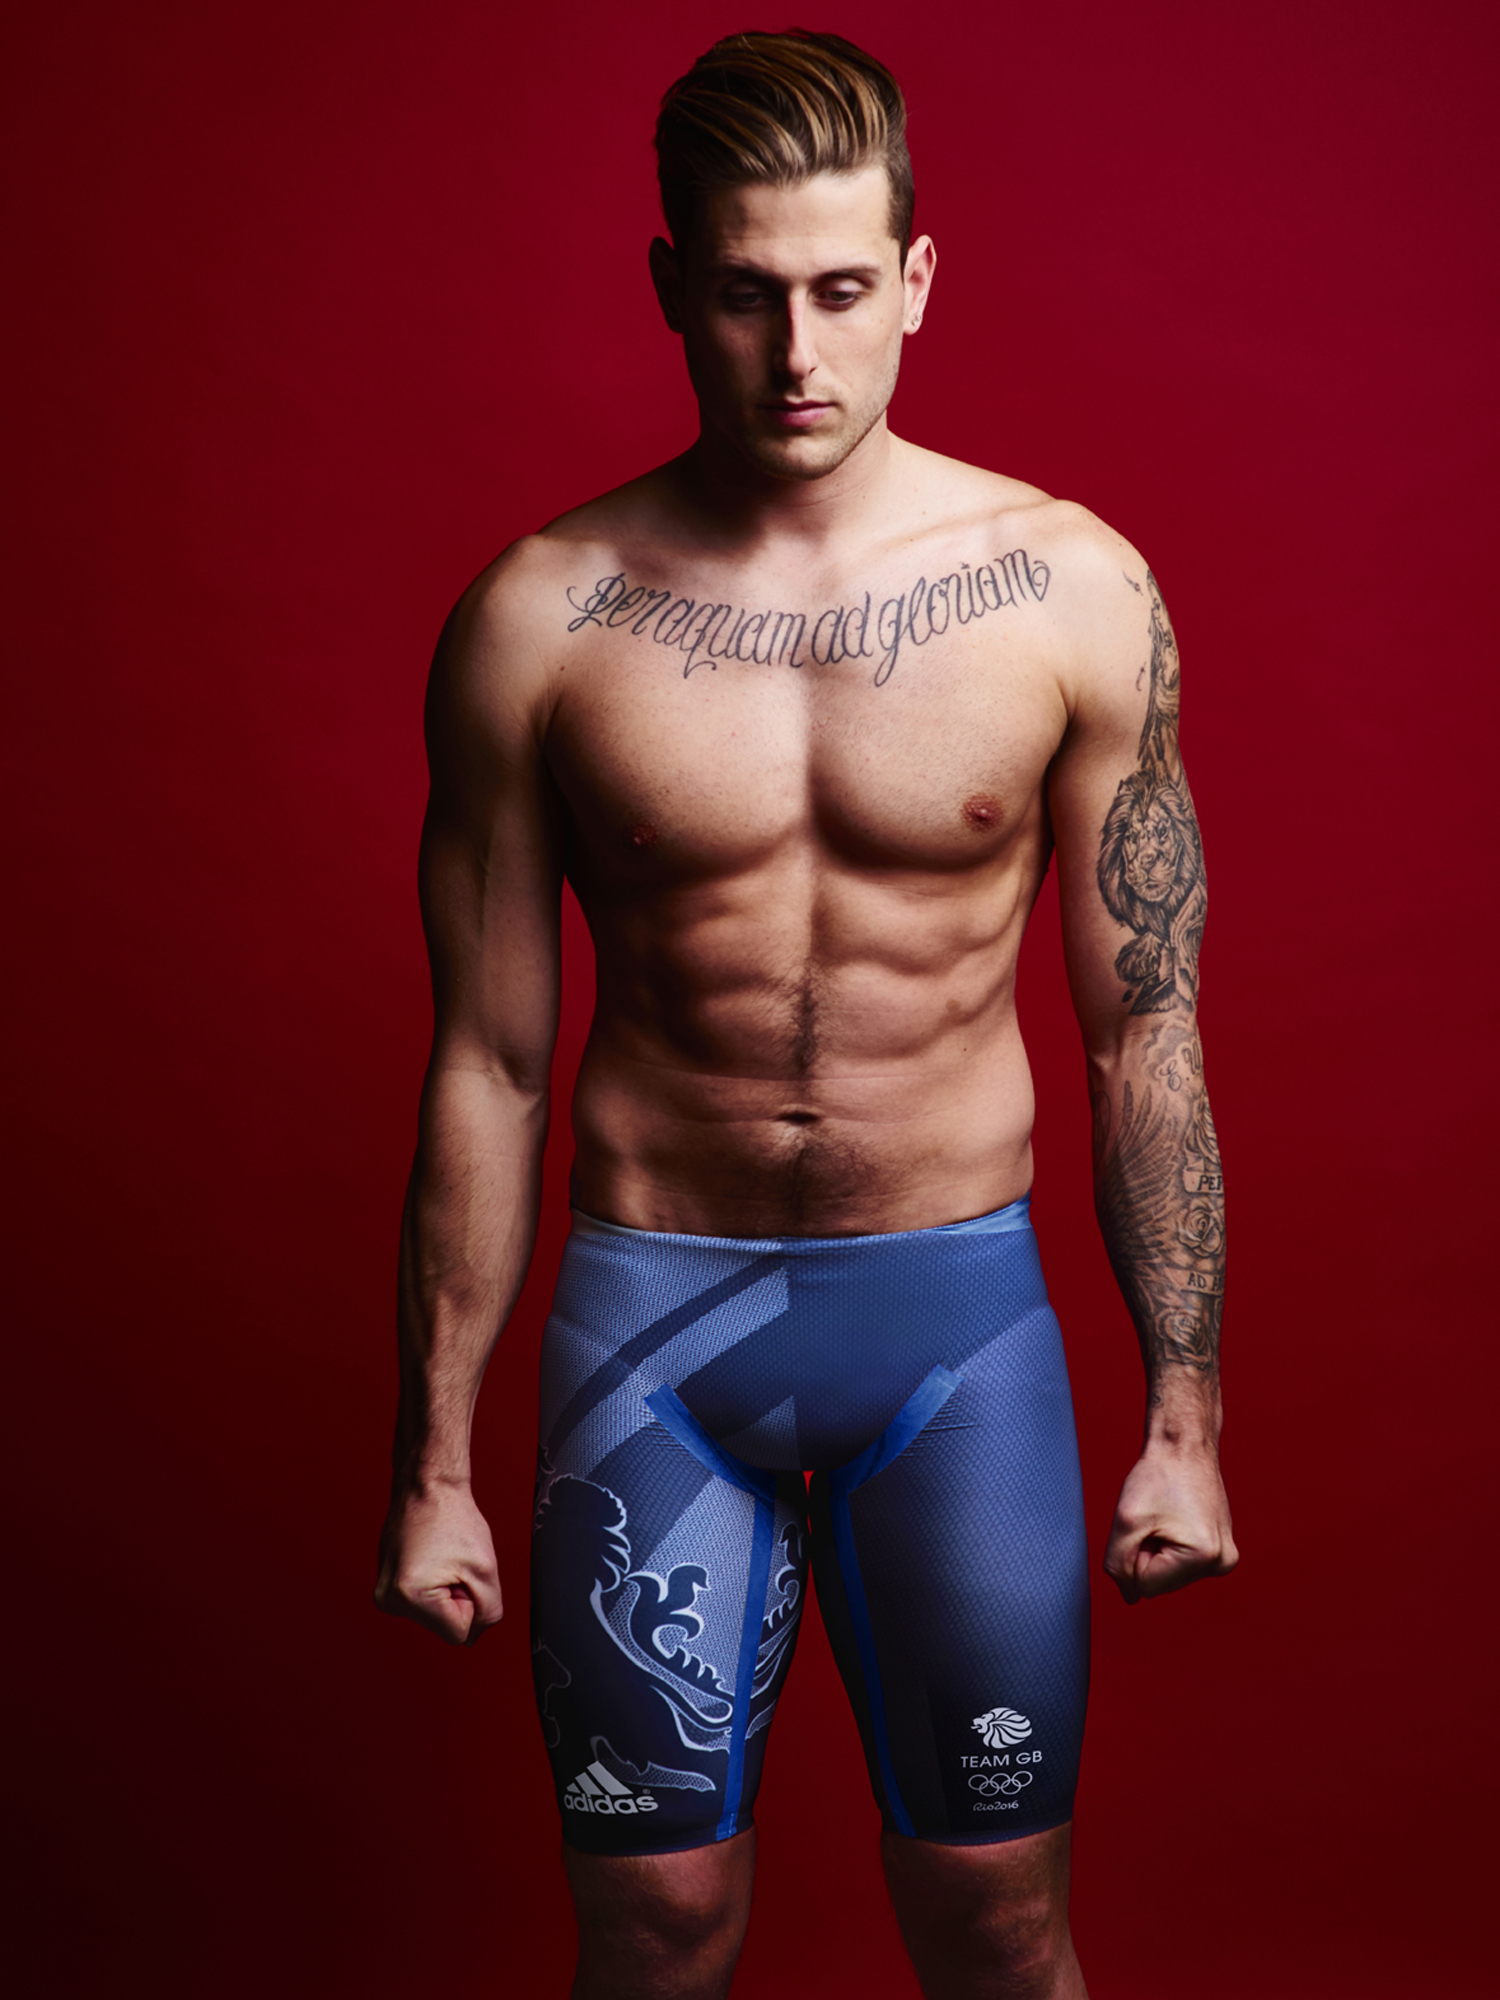 LONDON, ENGLAND - UNDATED: In this handout image from adidas, Team GB athlete Chris Walker-Hebborn pictured in adidas Team GB Rio 2016 Olympic kit in London, England. (Photo by Ben Duffy/adidas/Handout/Getty Images)